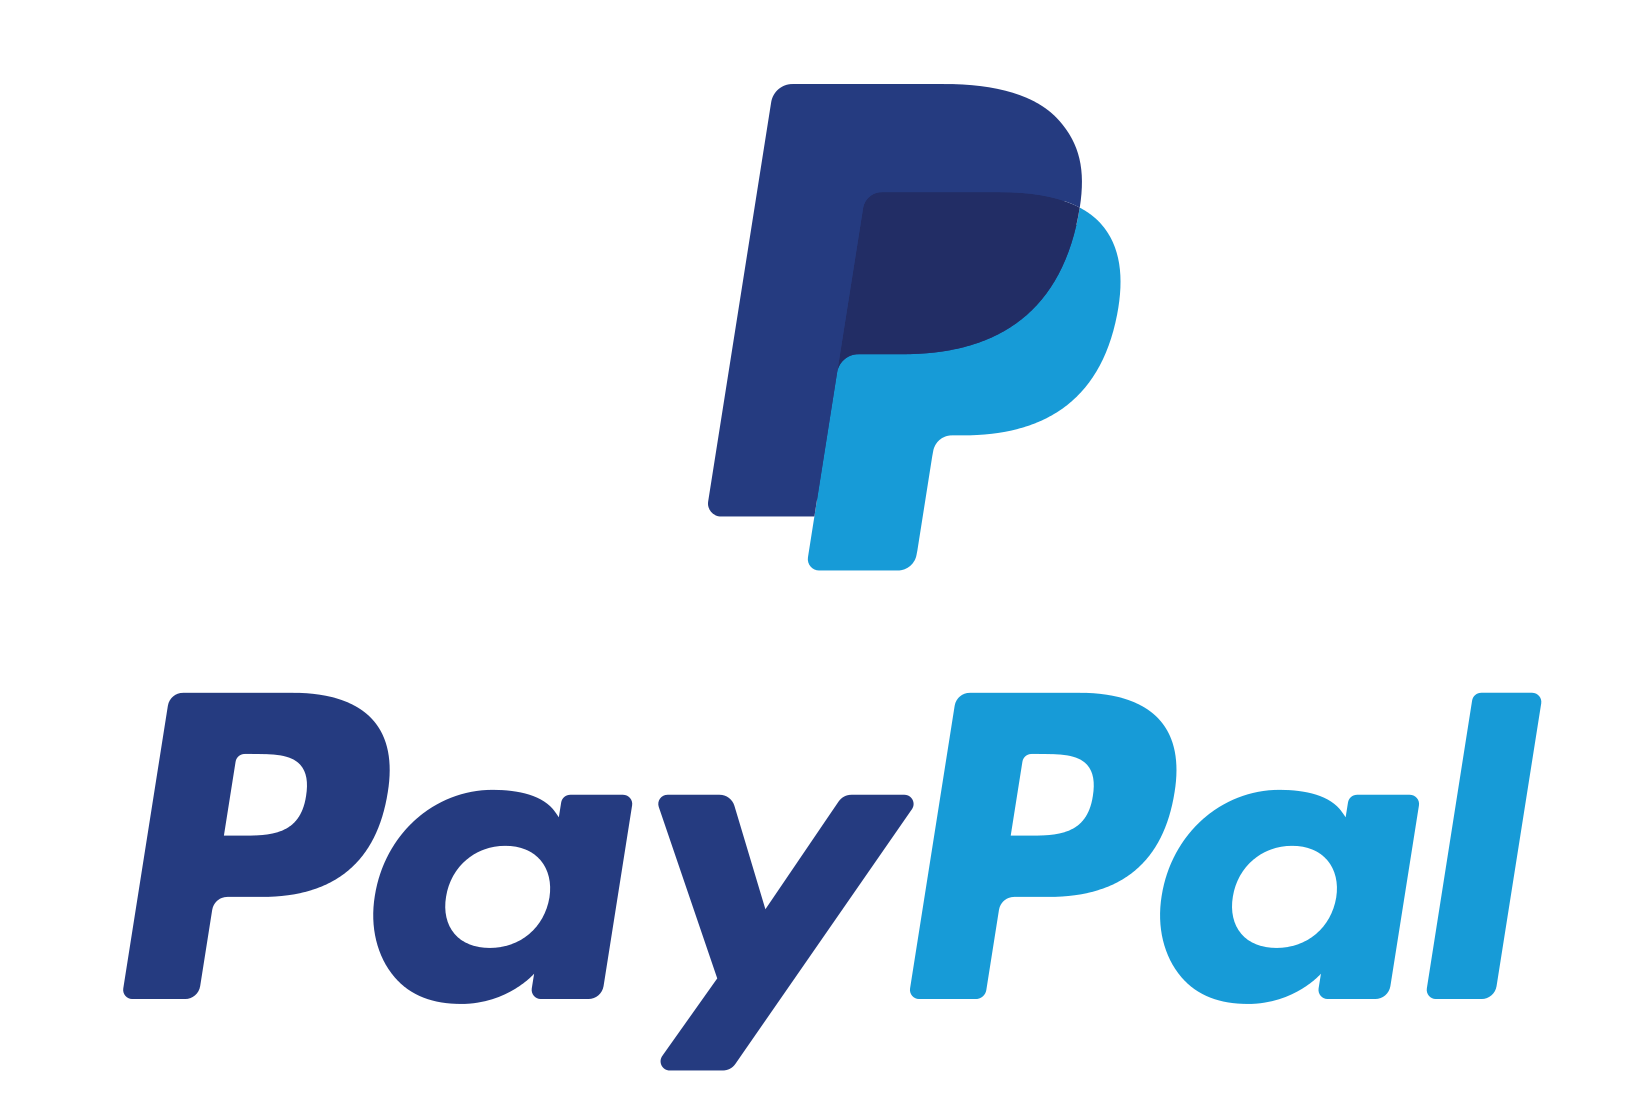 Logo paypal png. Money adder mike trantow